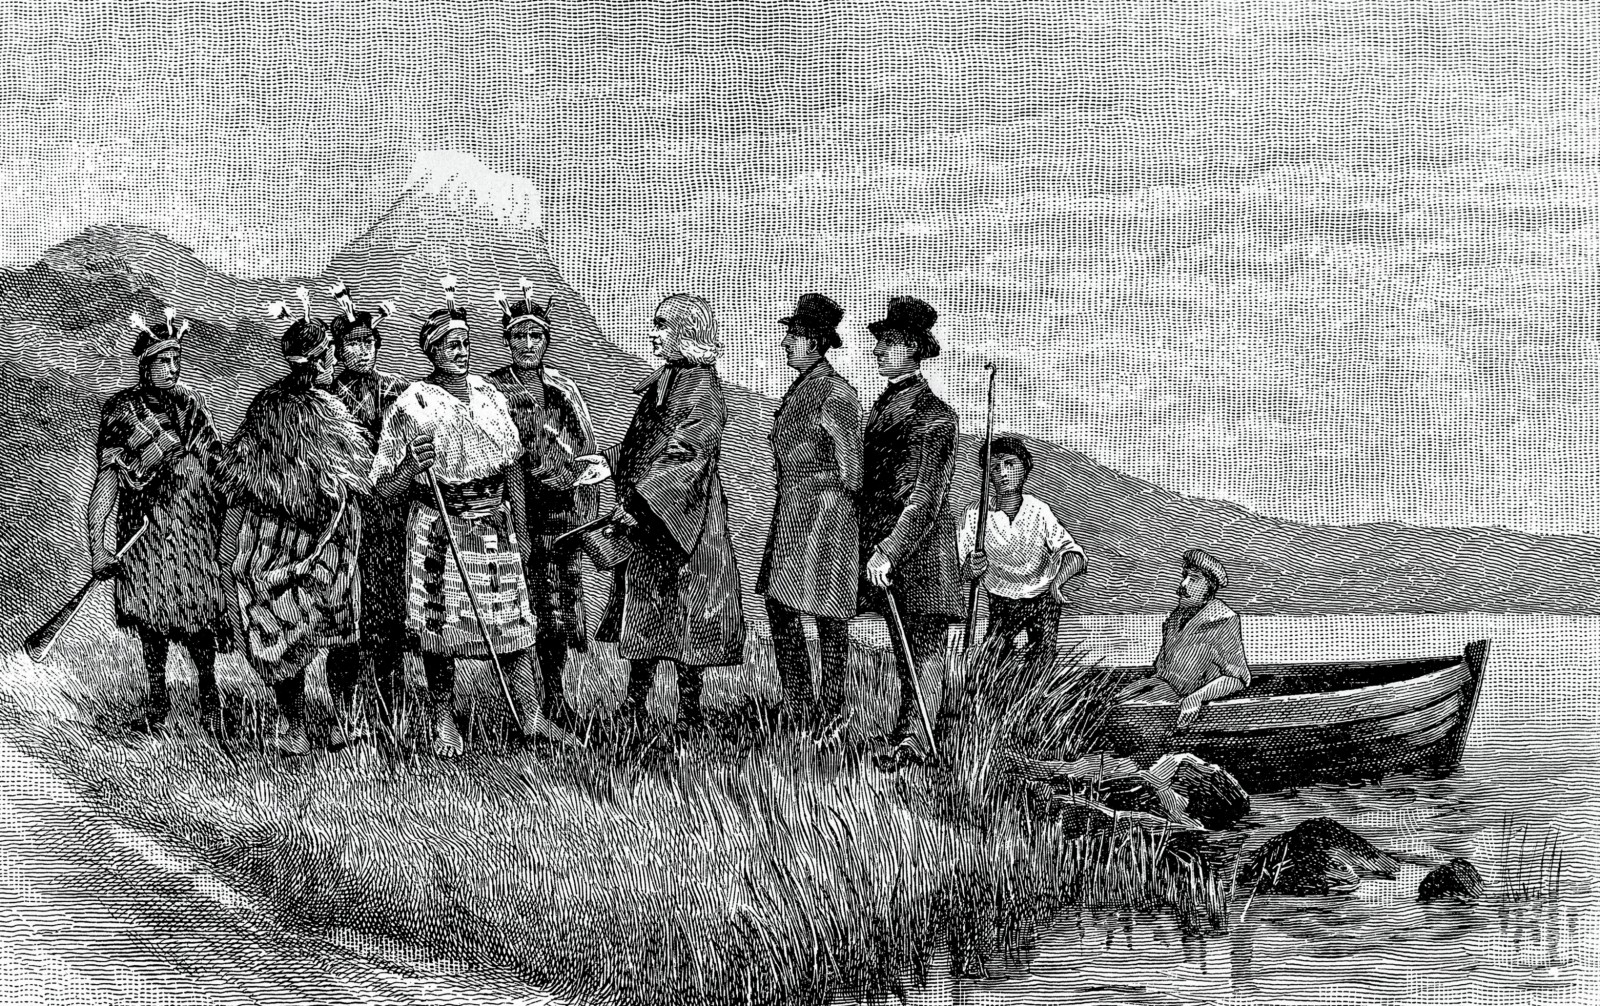 "A fanciful reconstruction of the ""landing of Samuel Marsden at Bay of Islands, December 19, 1814."" Since the party didn't reach the Bay of Islands until the 22nd, this is more likely a depiction of the arrival in Whangaroa, which also fits better with the distinctive hill in the background. Marsden's hatted companions were likely Thomas Kendall and William Hall, would-be settlers to assist with the establishment of a mission, and who had already visited NZ earlier in the year."